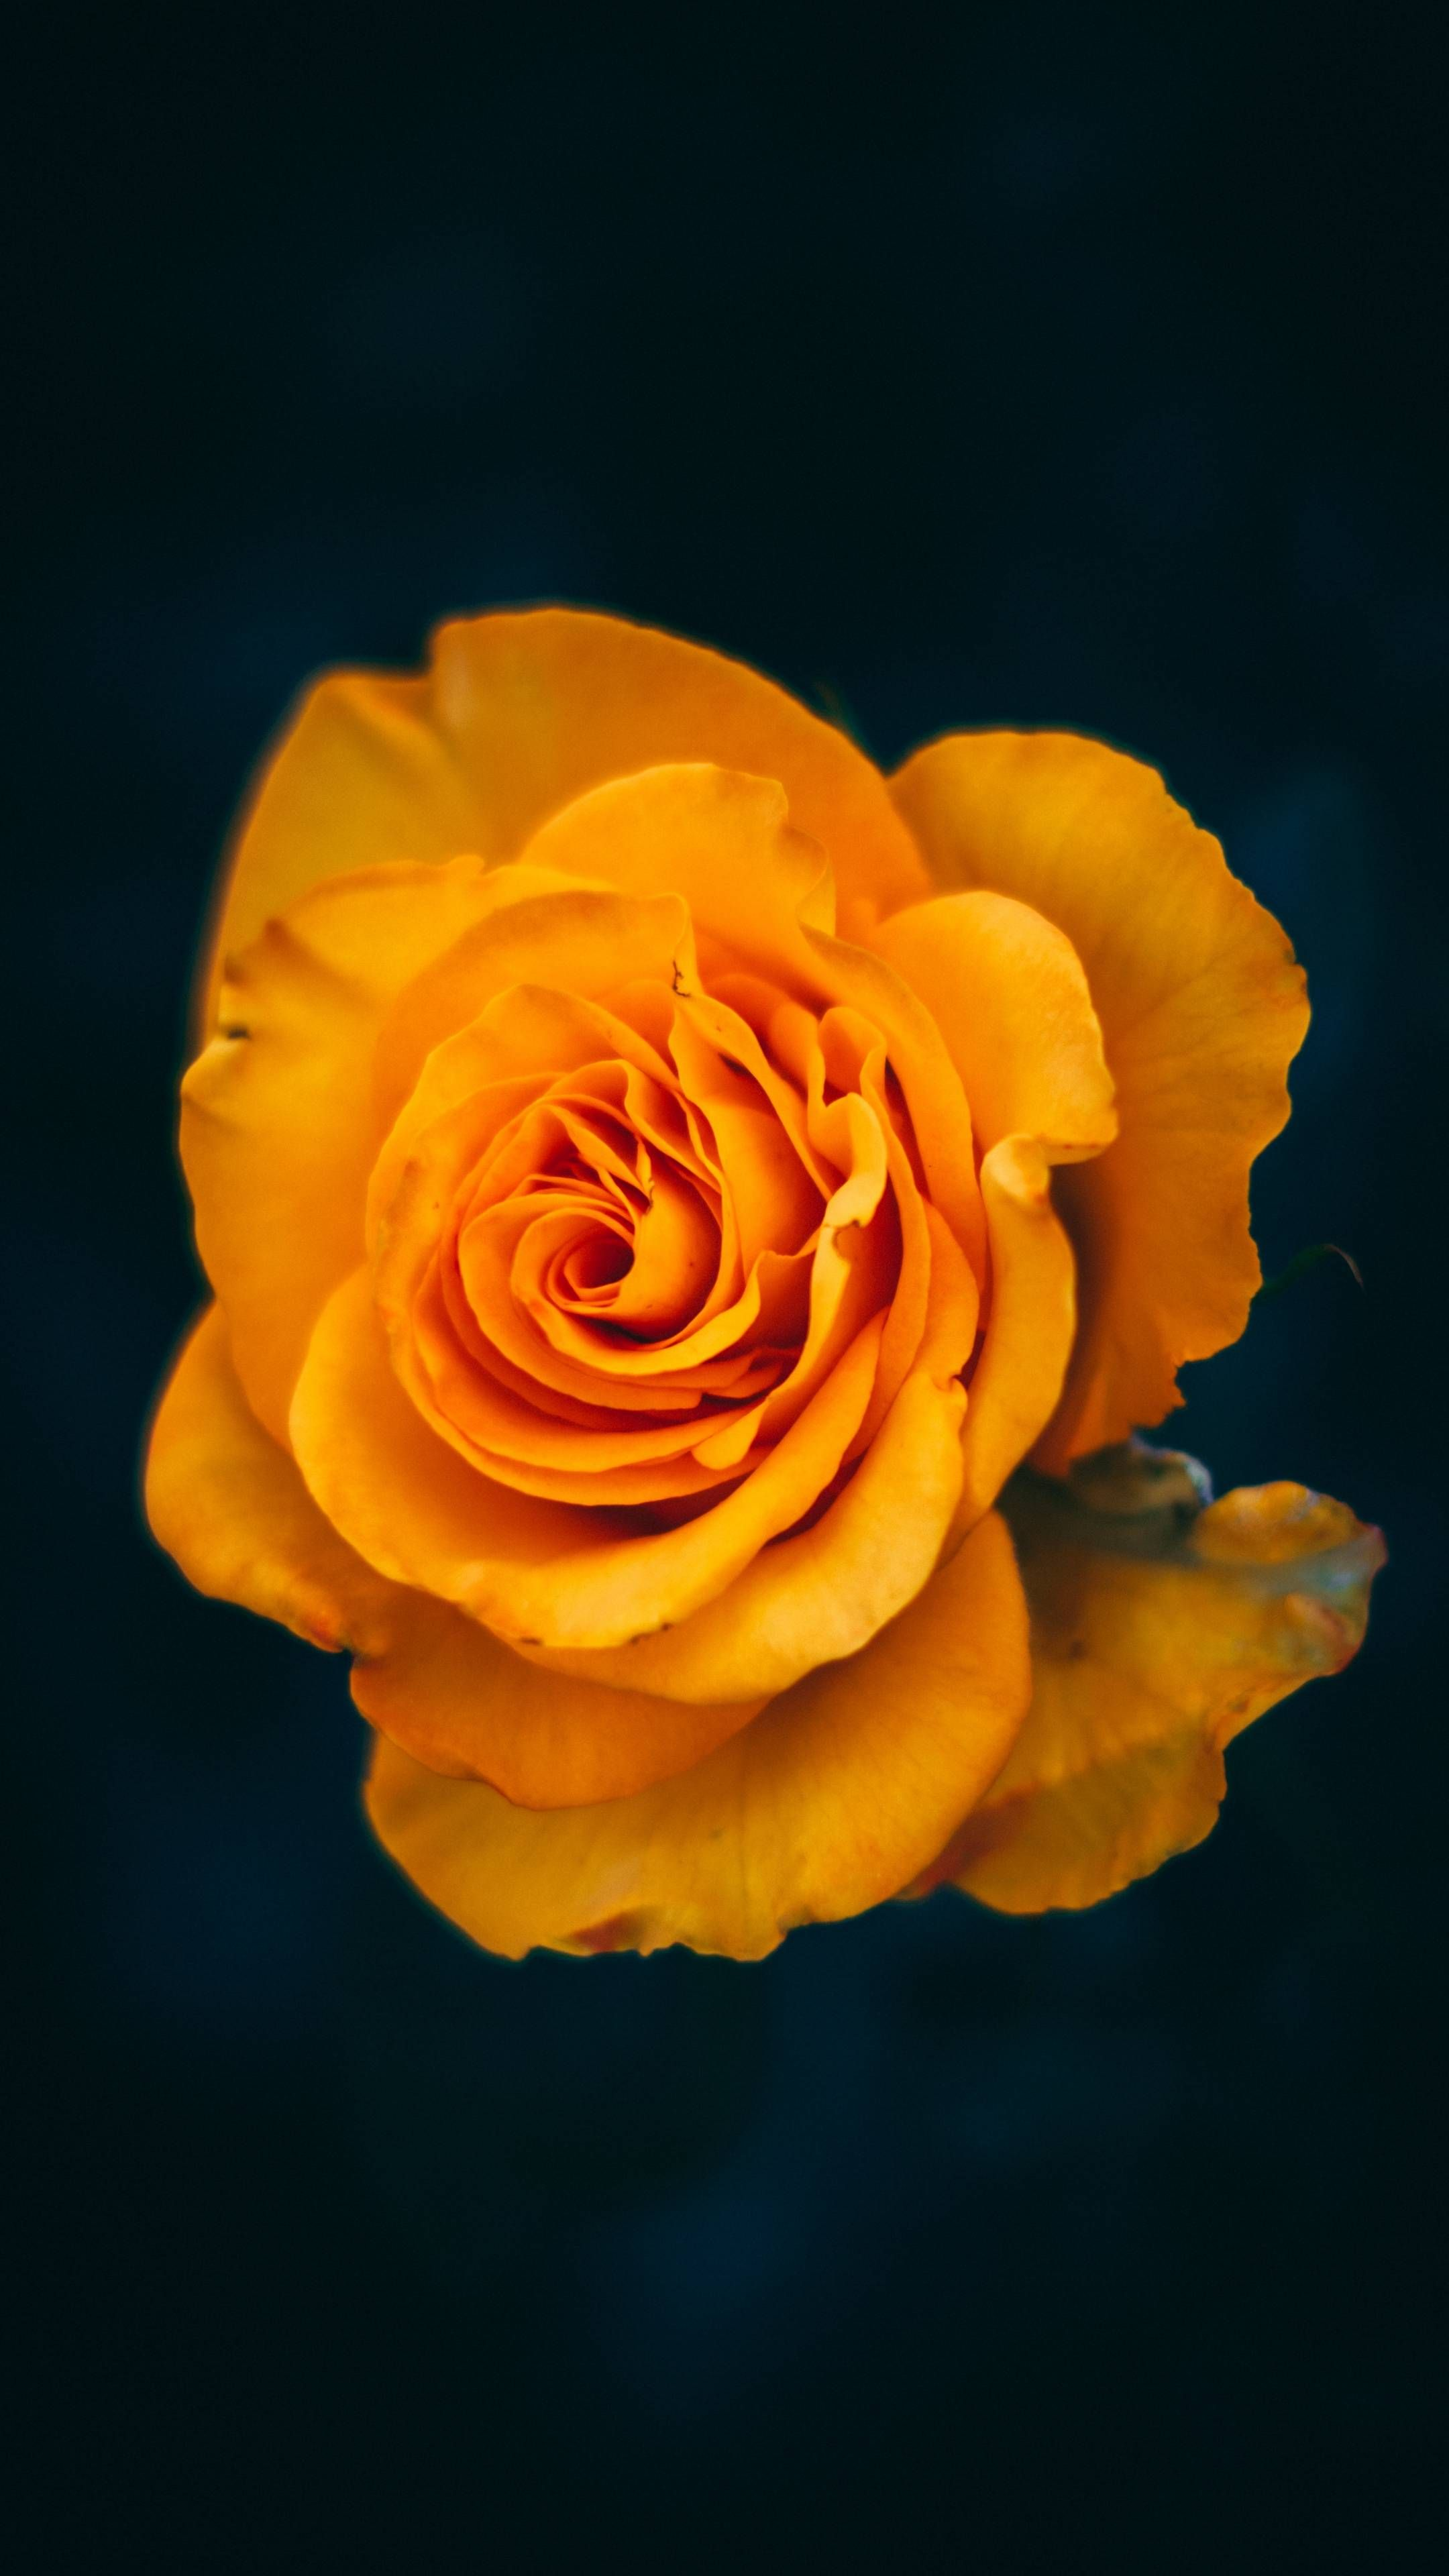 Download Iphone Xs Iphone Xs Max Iphone Xr Hd Wallpapers Rose Flower Yellow Bloom Closeup Flowers Rose Flower Rose Wallpaper